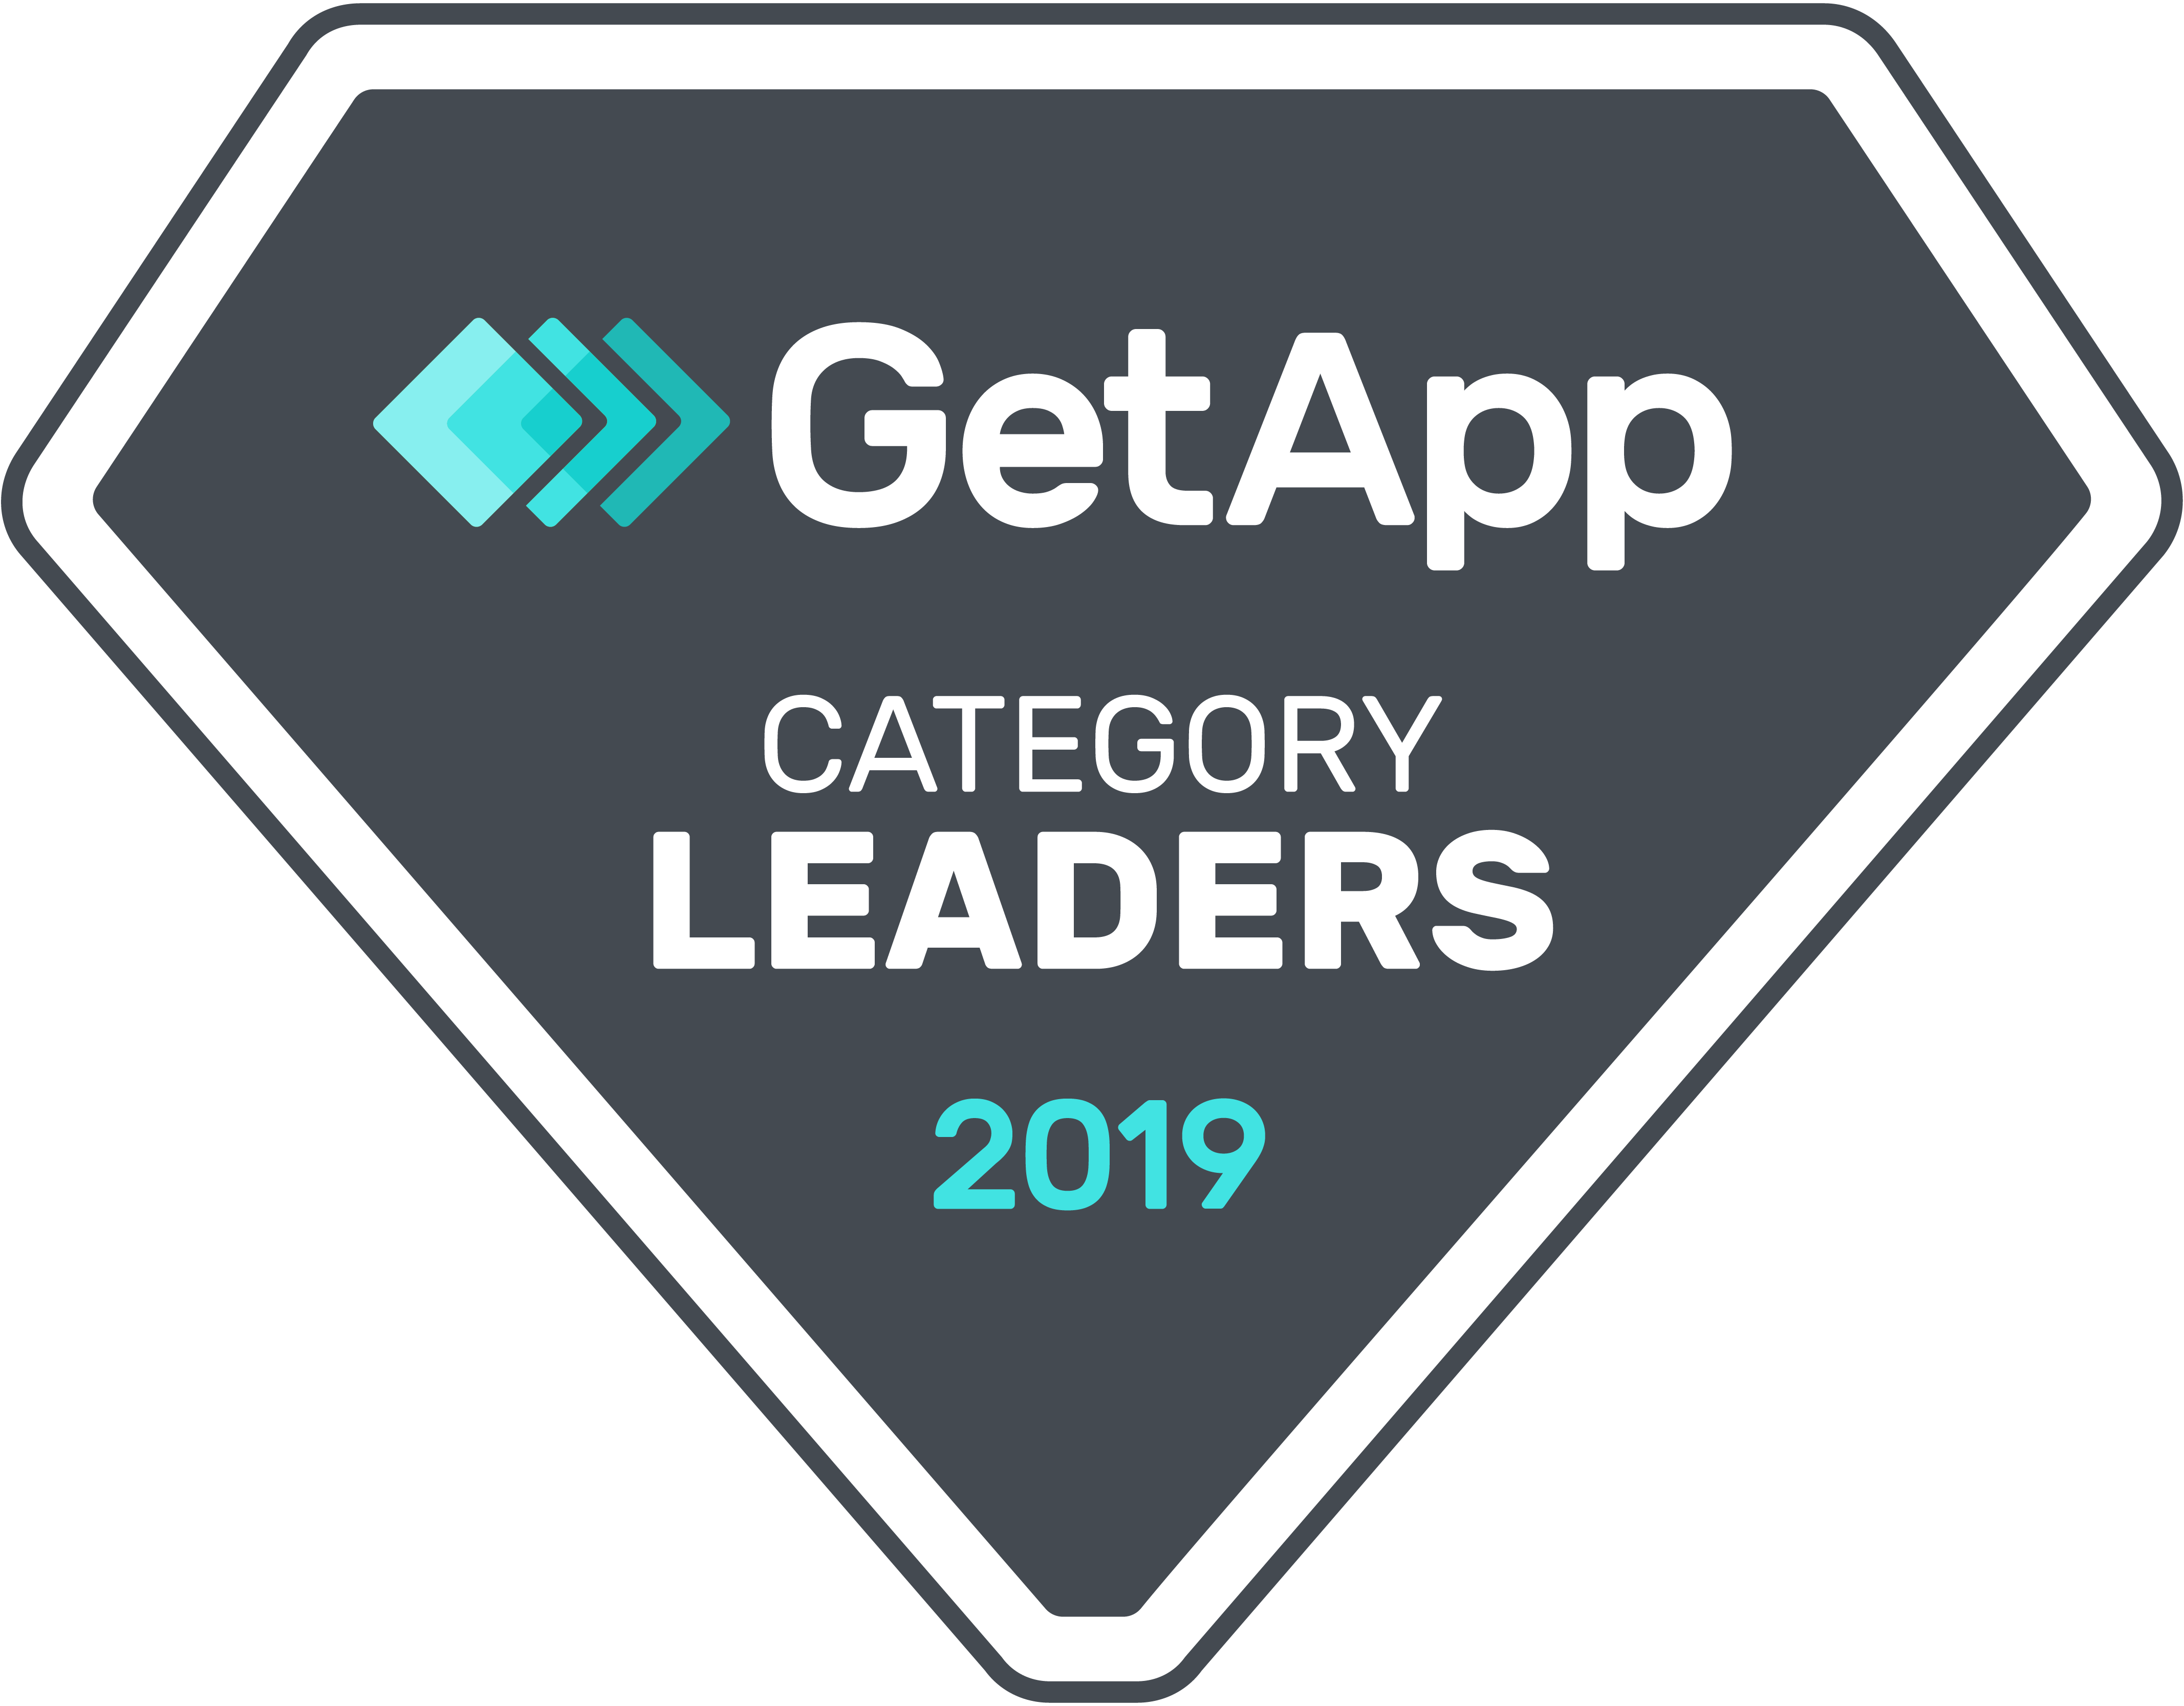 GetApp Category Leader Award 2019